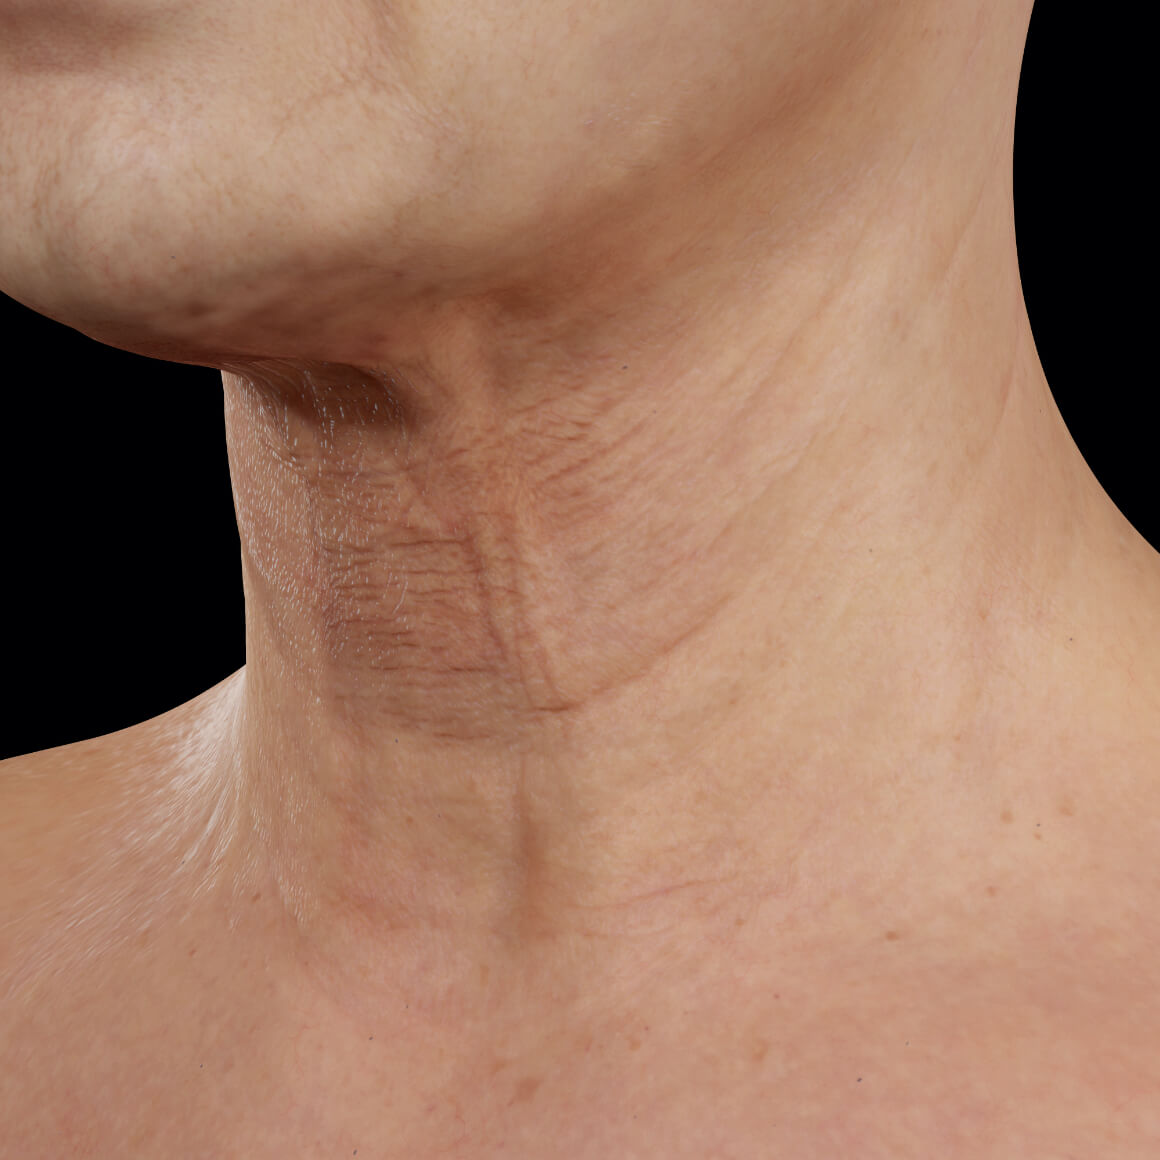 Clinique Chloé female patient positioned at an angle showing neck skin laxity